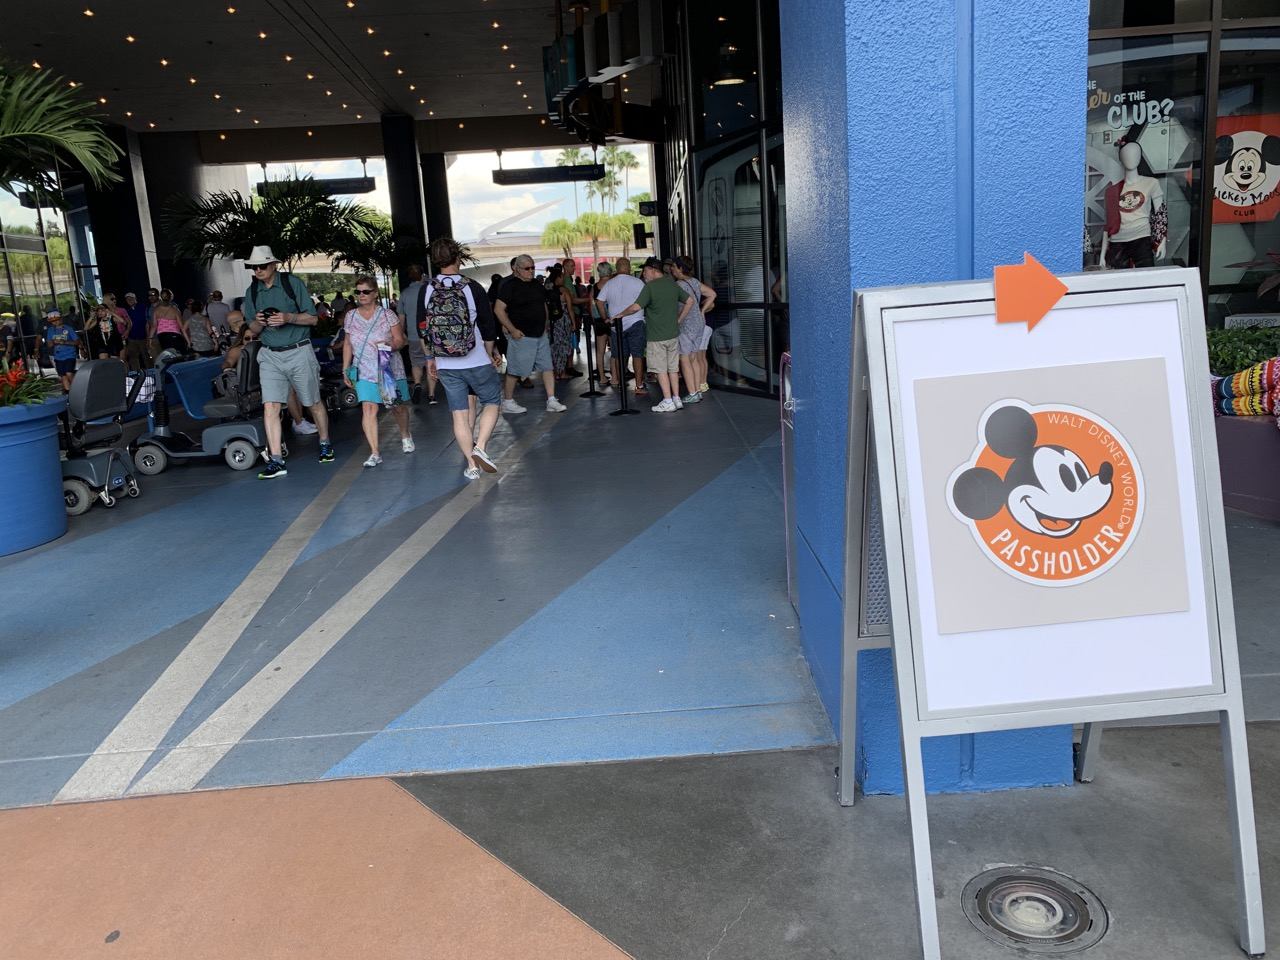 disney world trip report early summer 2019 day four 02 passholder magnet.jpeg